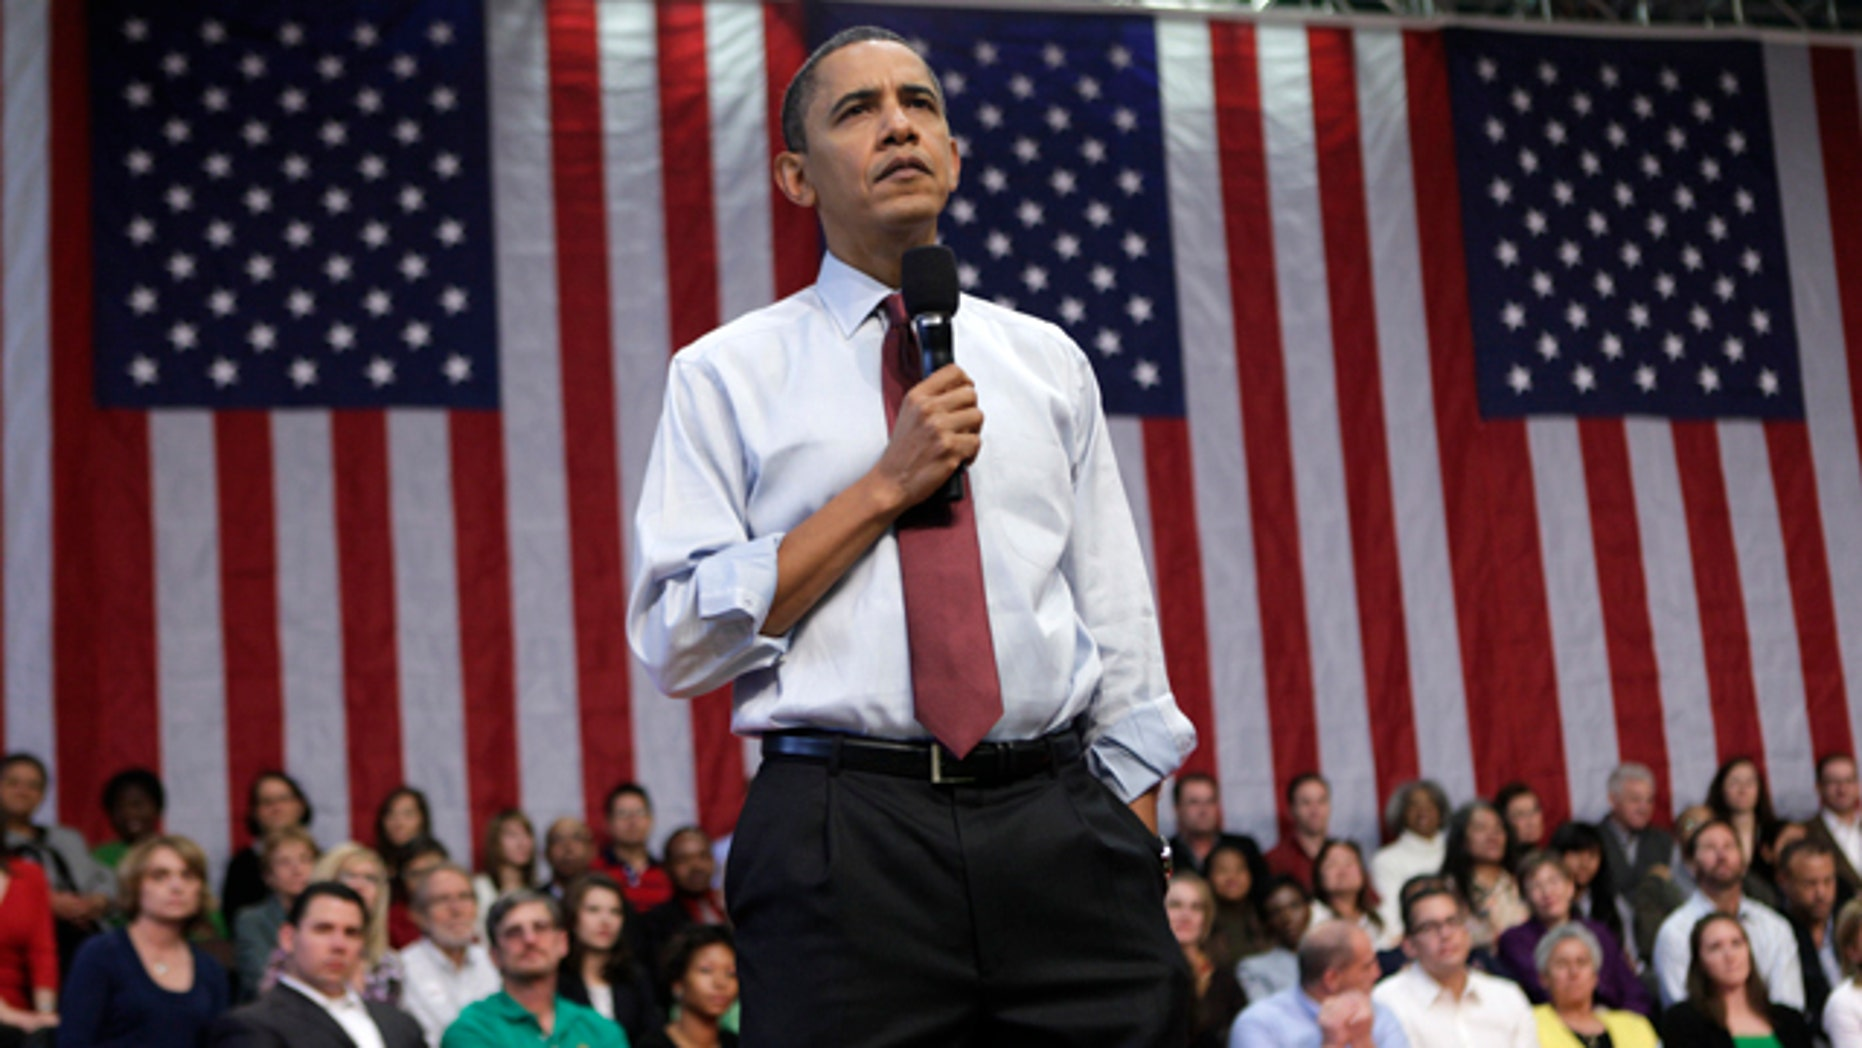 President Barack Obama takes part in a town hall meeting, Friday, Feb. 19, 2010, at Green Valley High School in Henderson, Nev. (AP Photo/Pablo Martinez Monsivais)